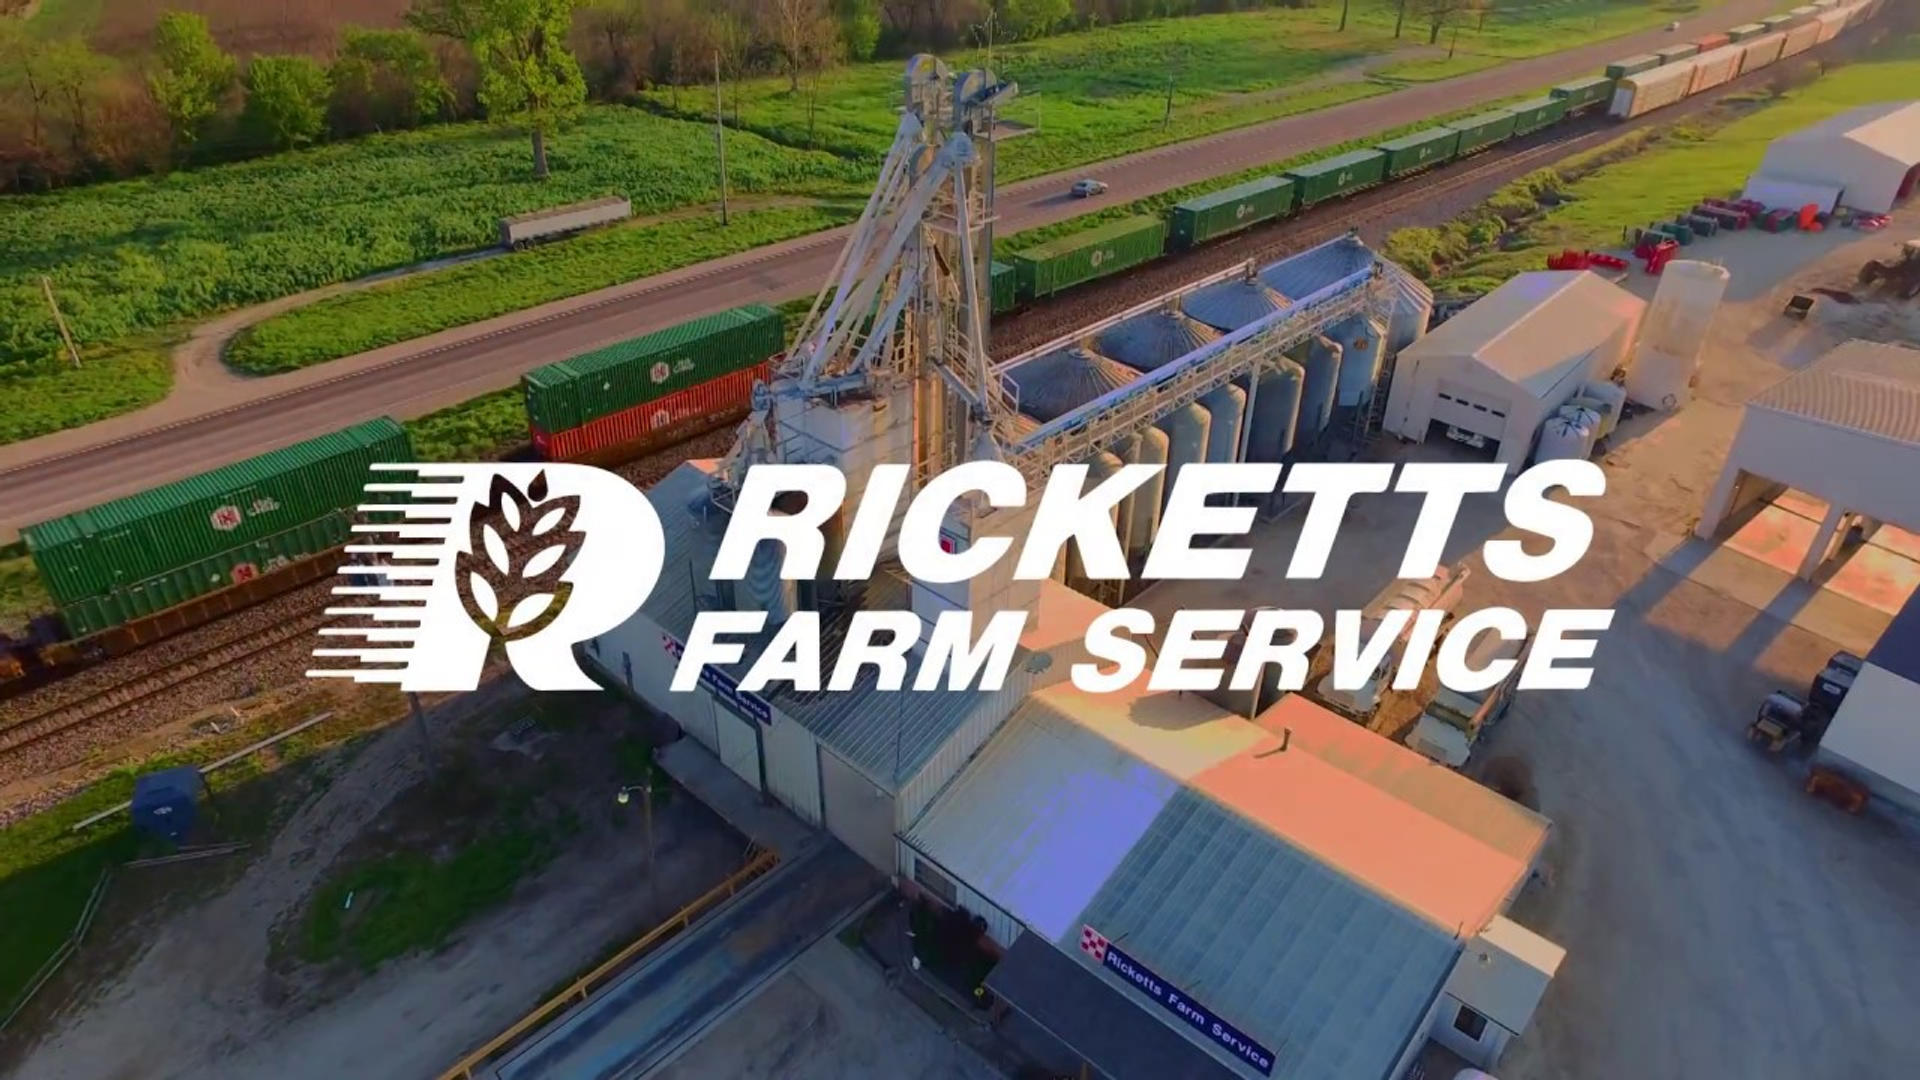 Ricketts Farm Service